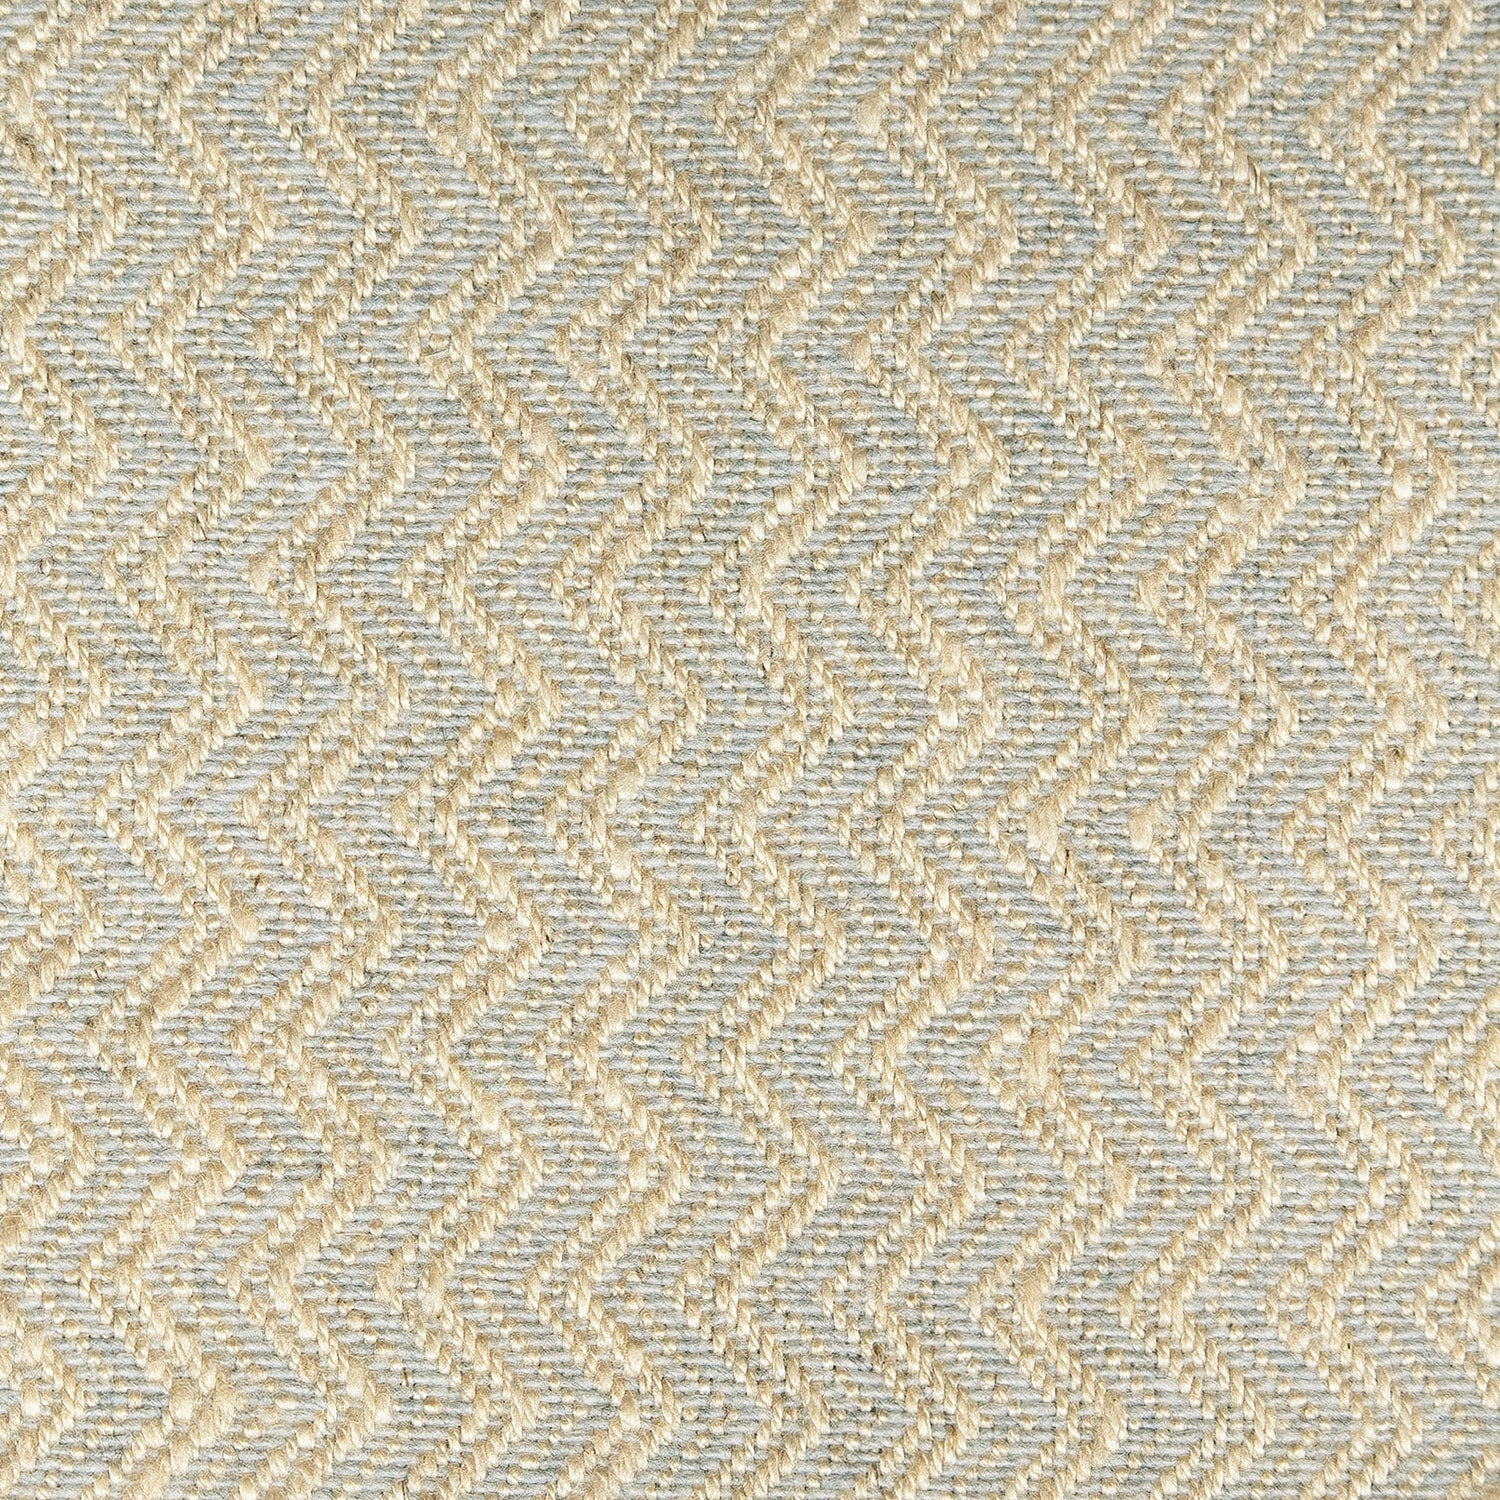 Grey fabric with a zig zag weave design for curtains and upholstery